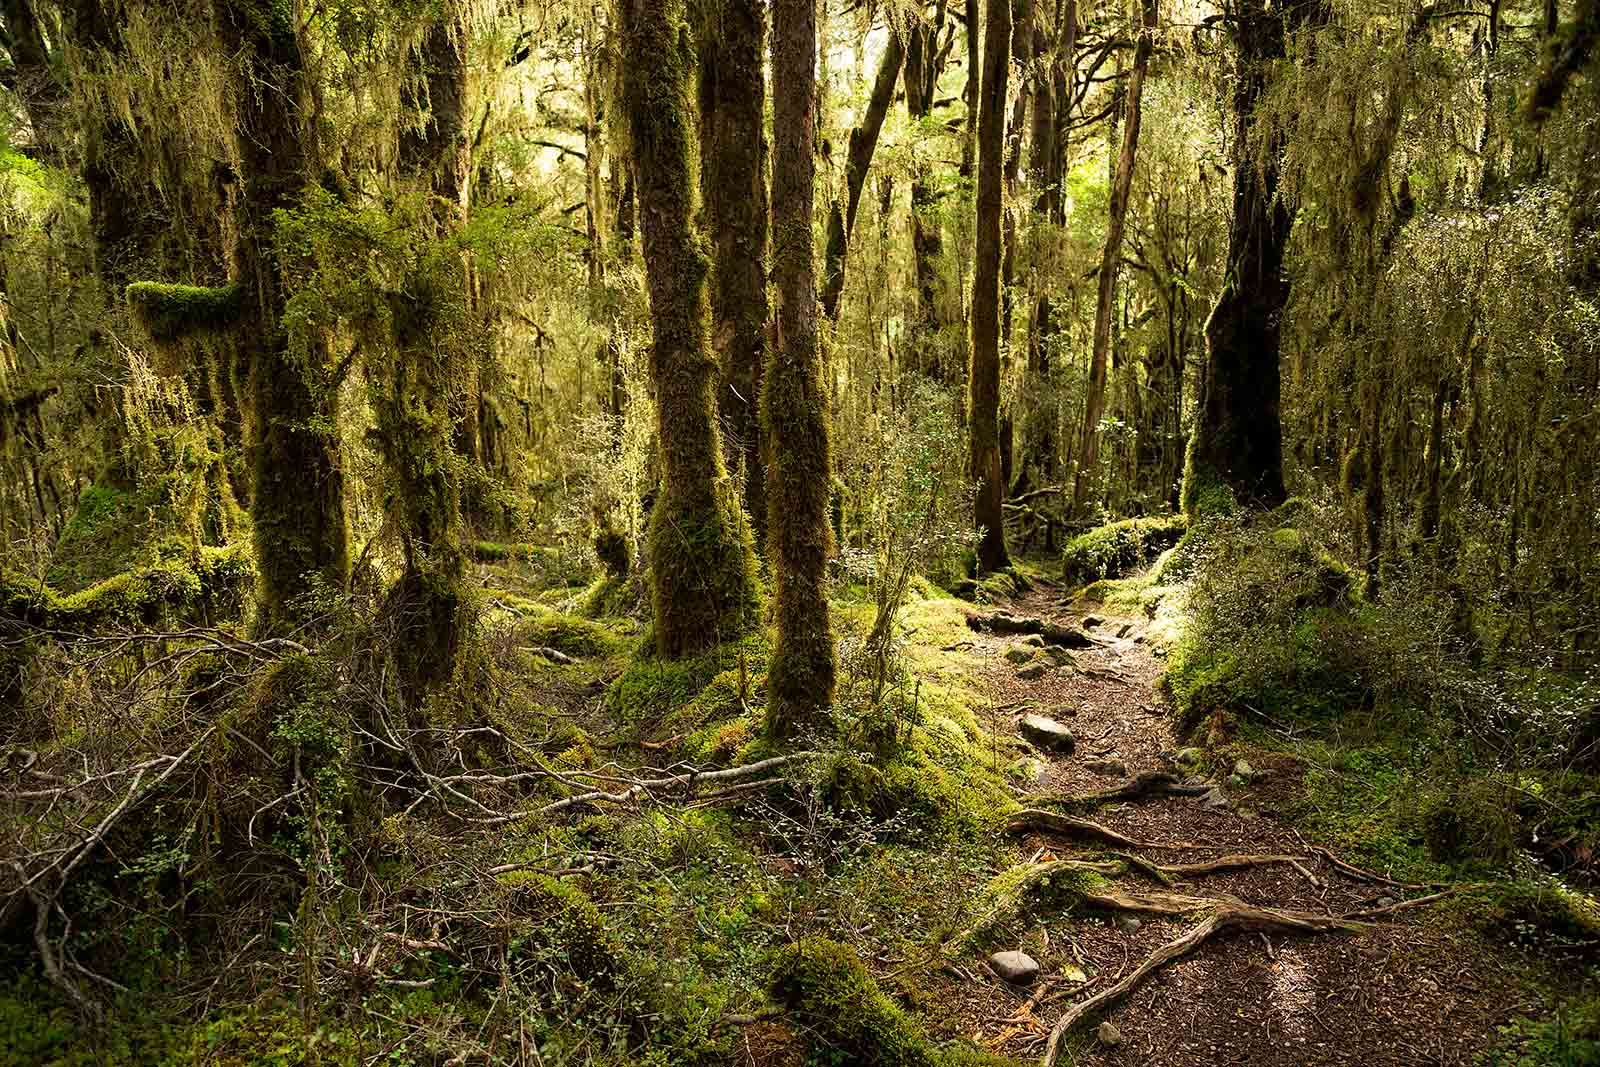 milford-track-day-1-new-zealand